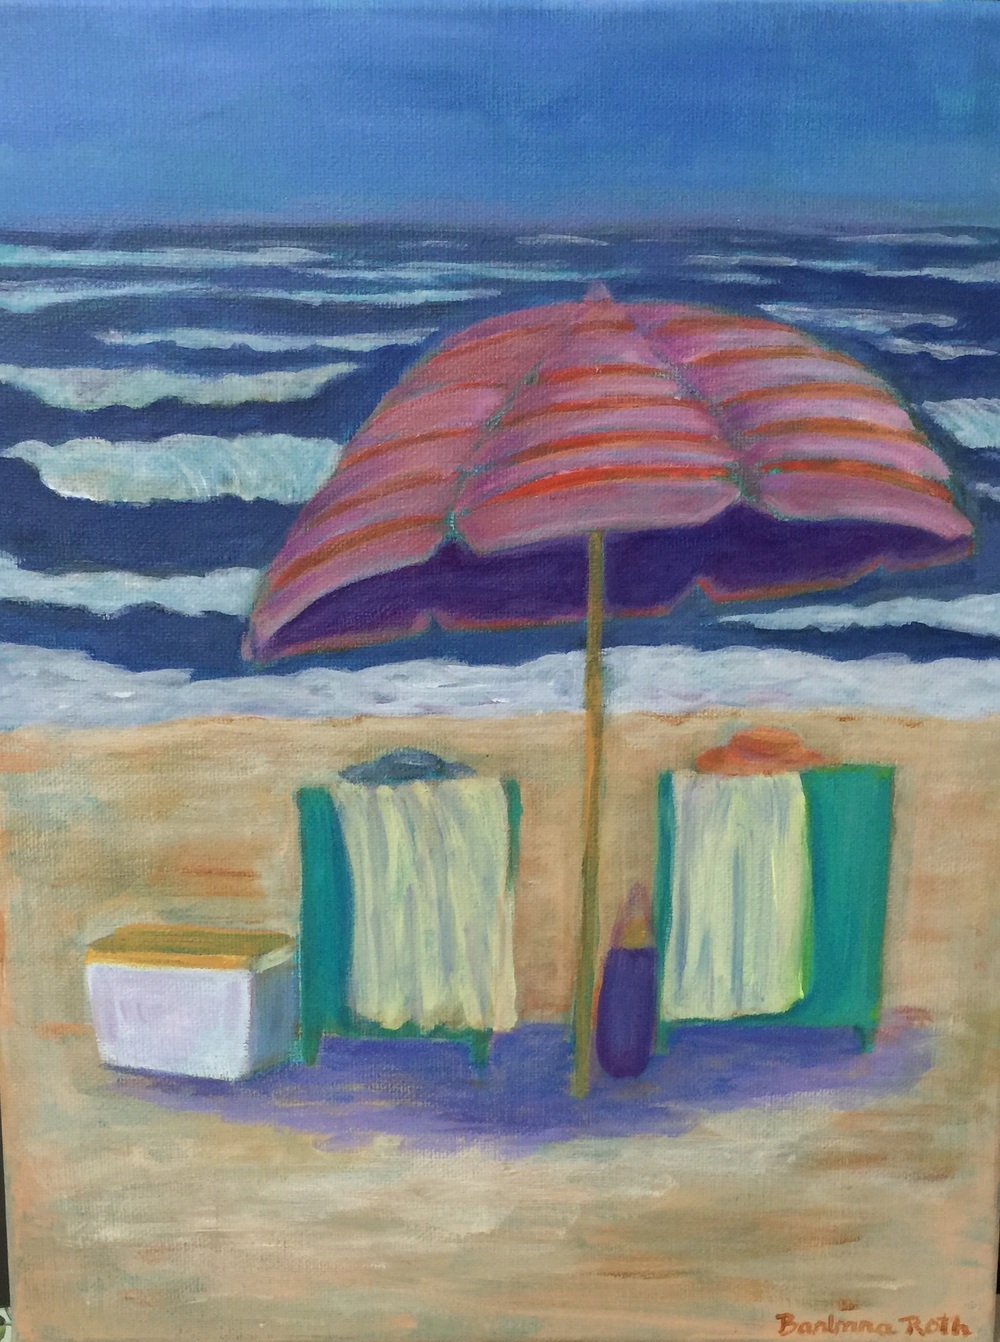 Under the Pink Striped Umbrella . Acrylic painting by Barbara Roth